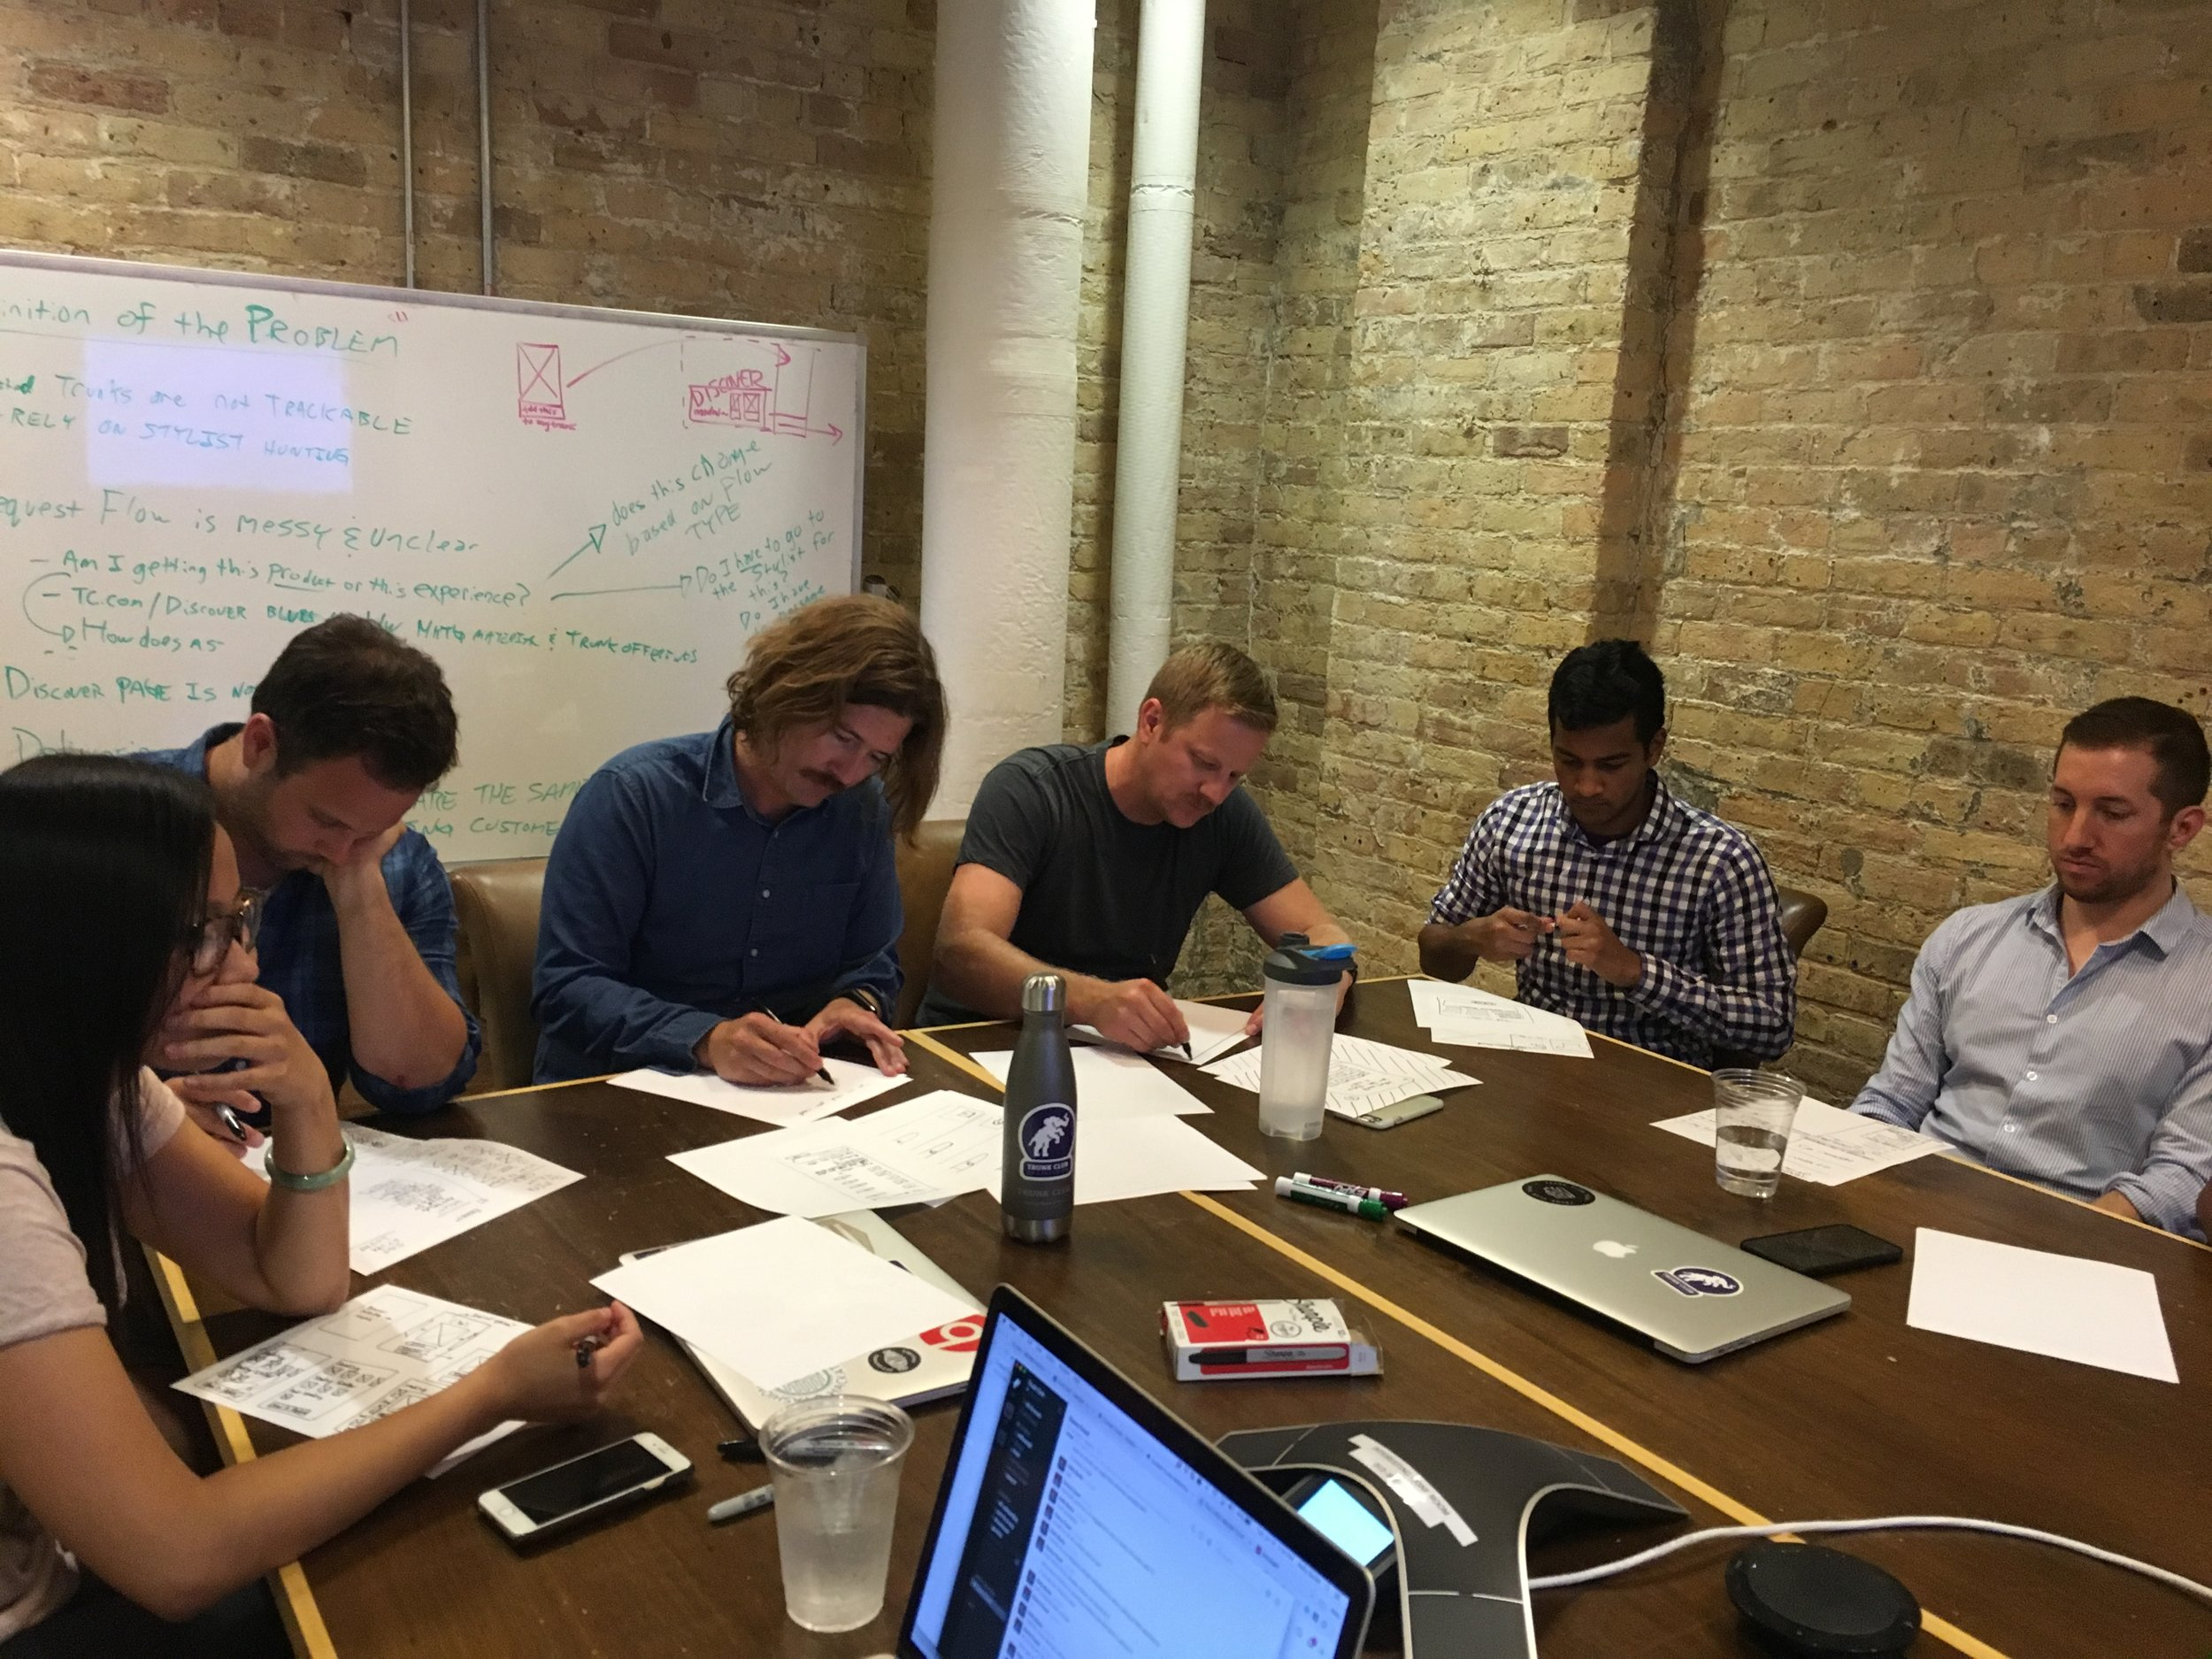 Armed with initial insights, we hosted a cross-functional sketching session led by myself and another product designer. In the room were designers, product managers, engineers, and marketing stakeholders.